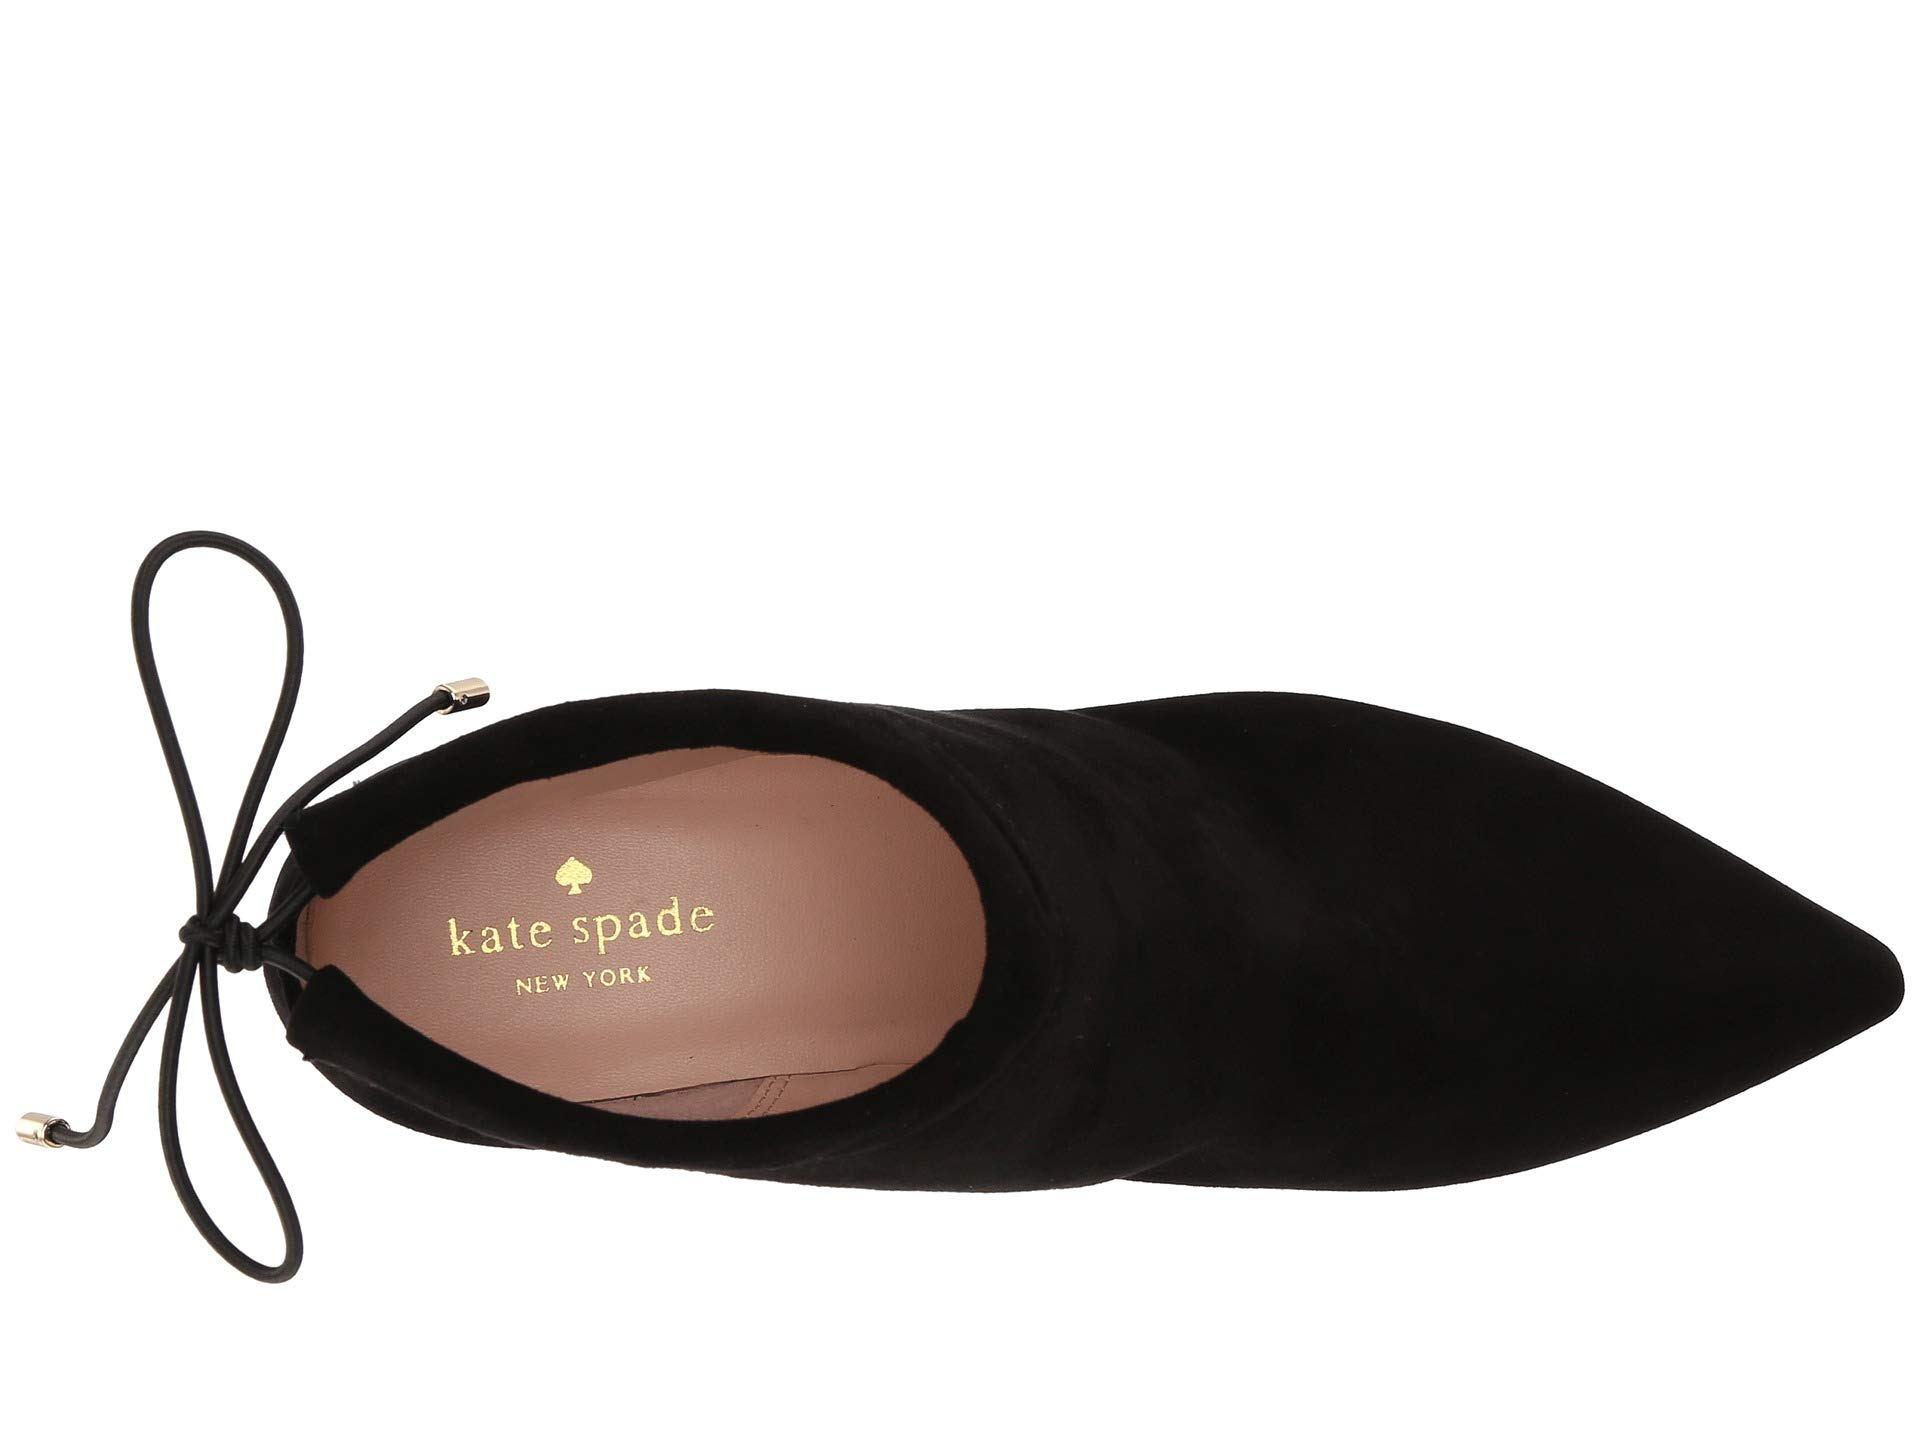 a100e5fefe Kate Spade New York Sophie at Luxury.Zappos.com